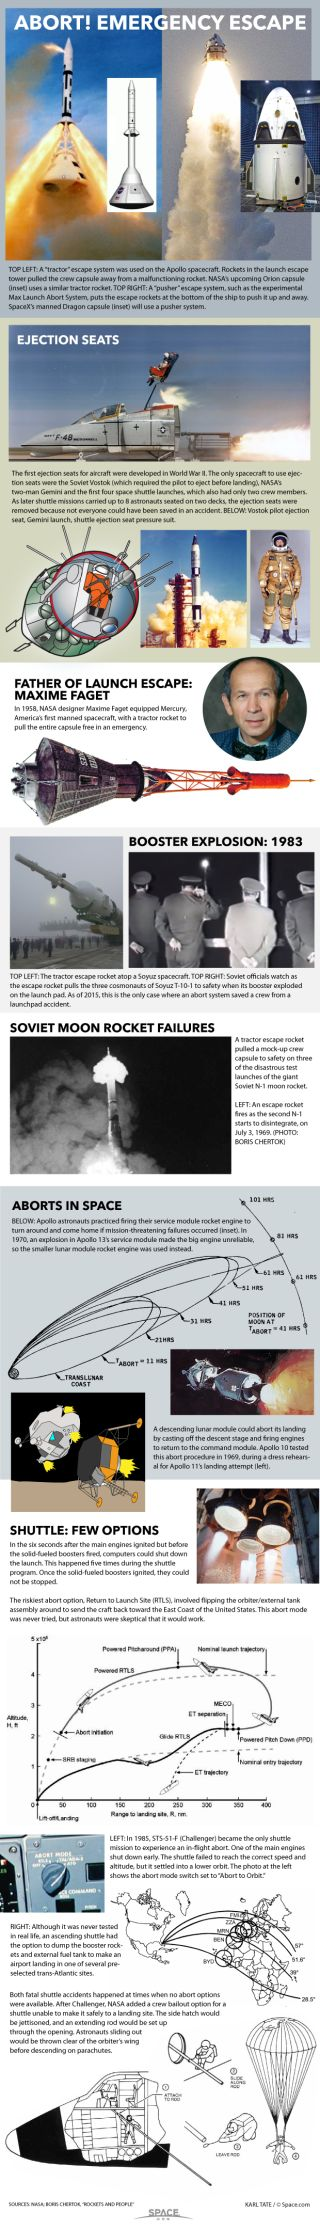 Chart explains some of the methods for aborting space missions.